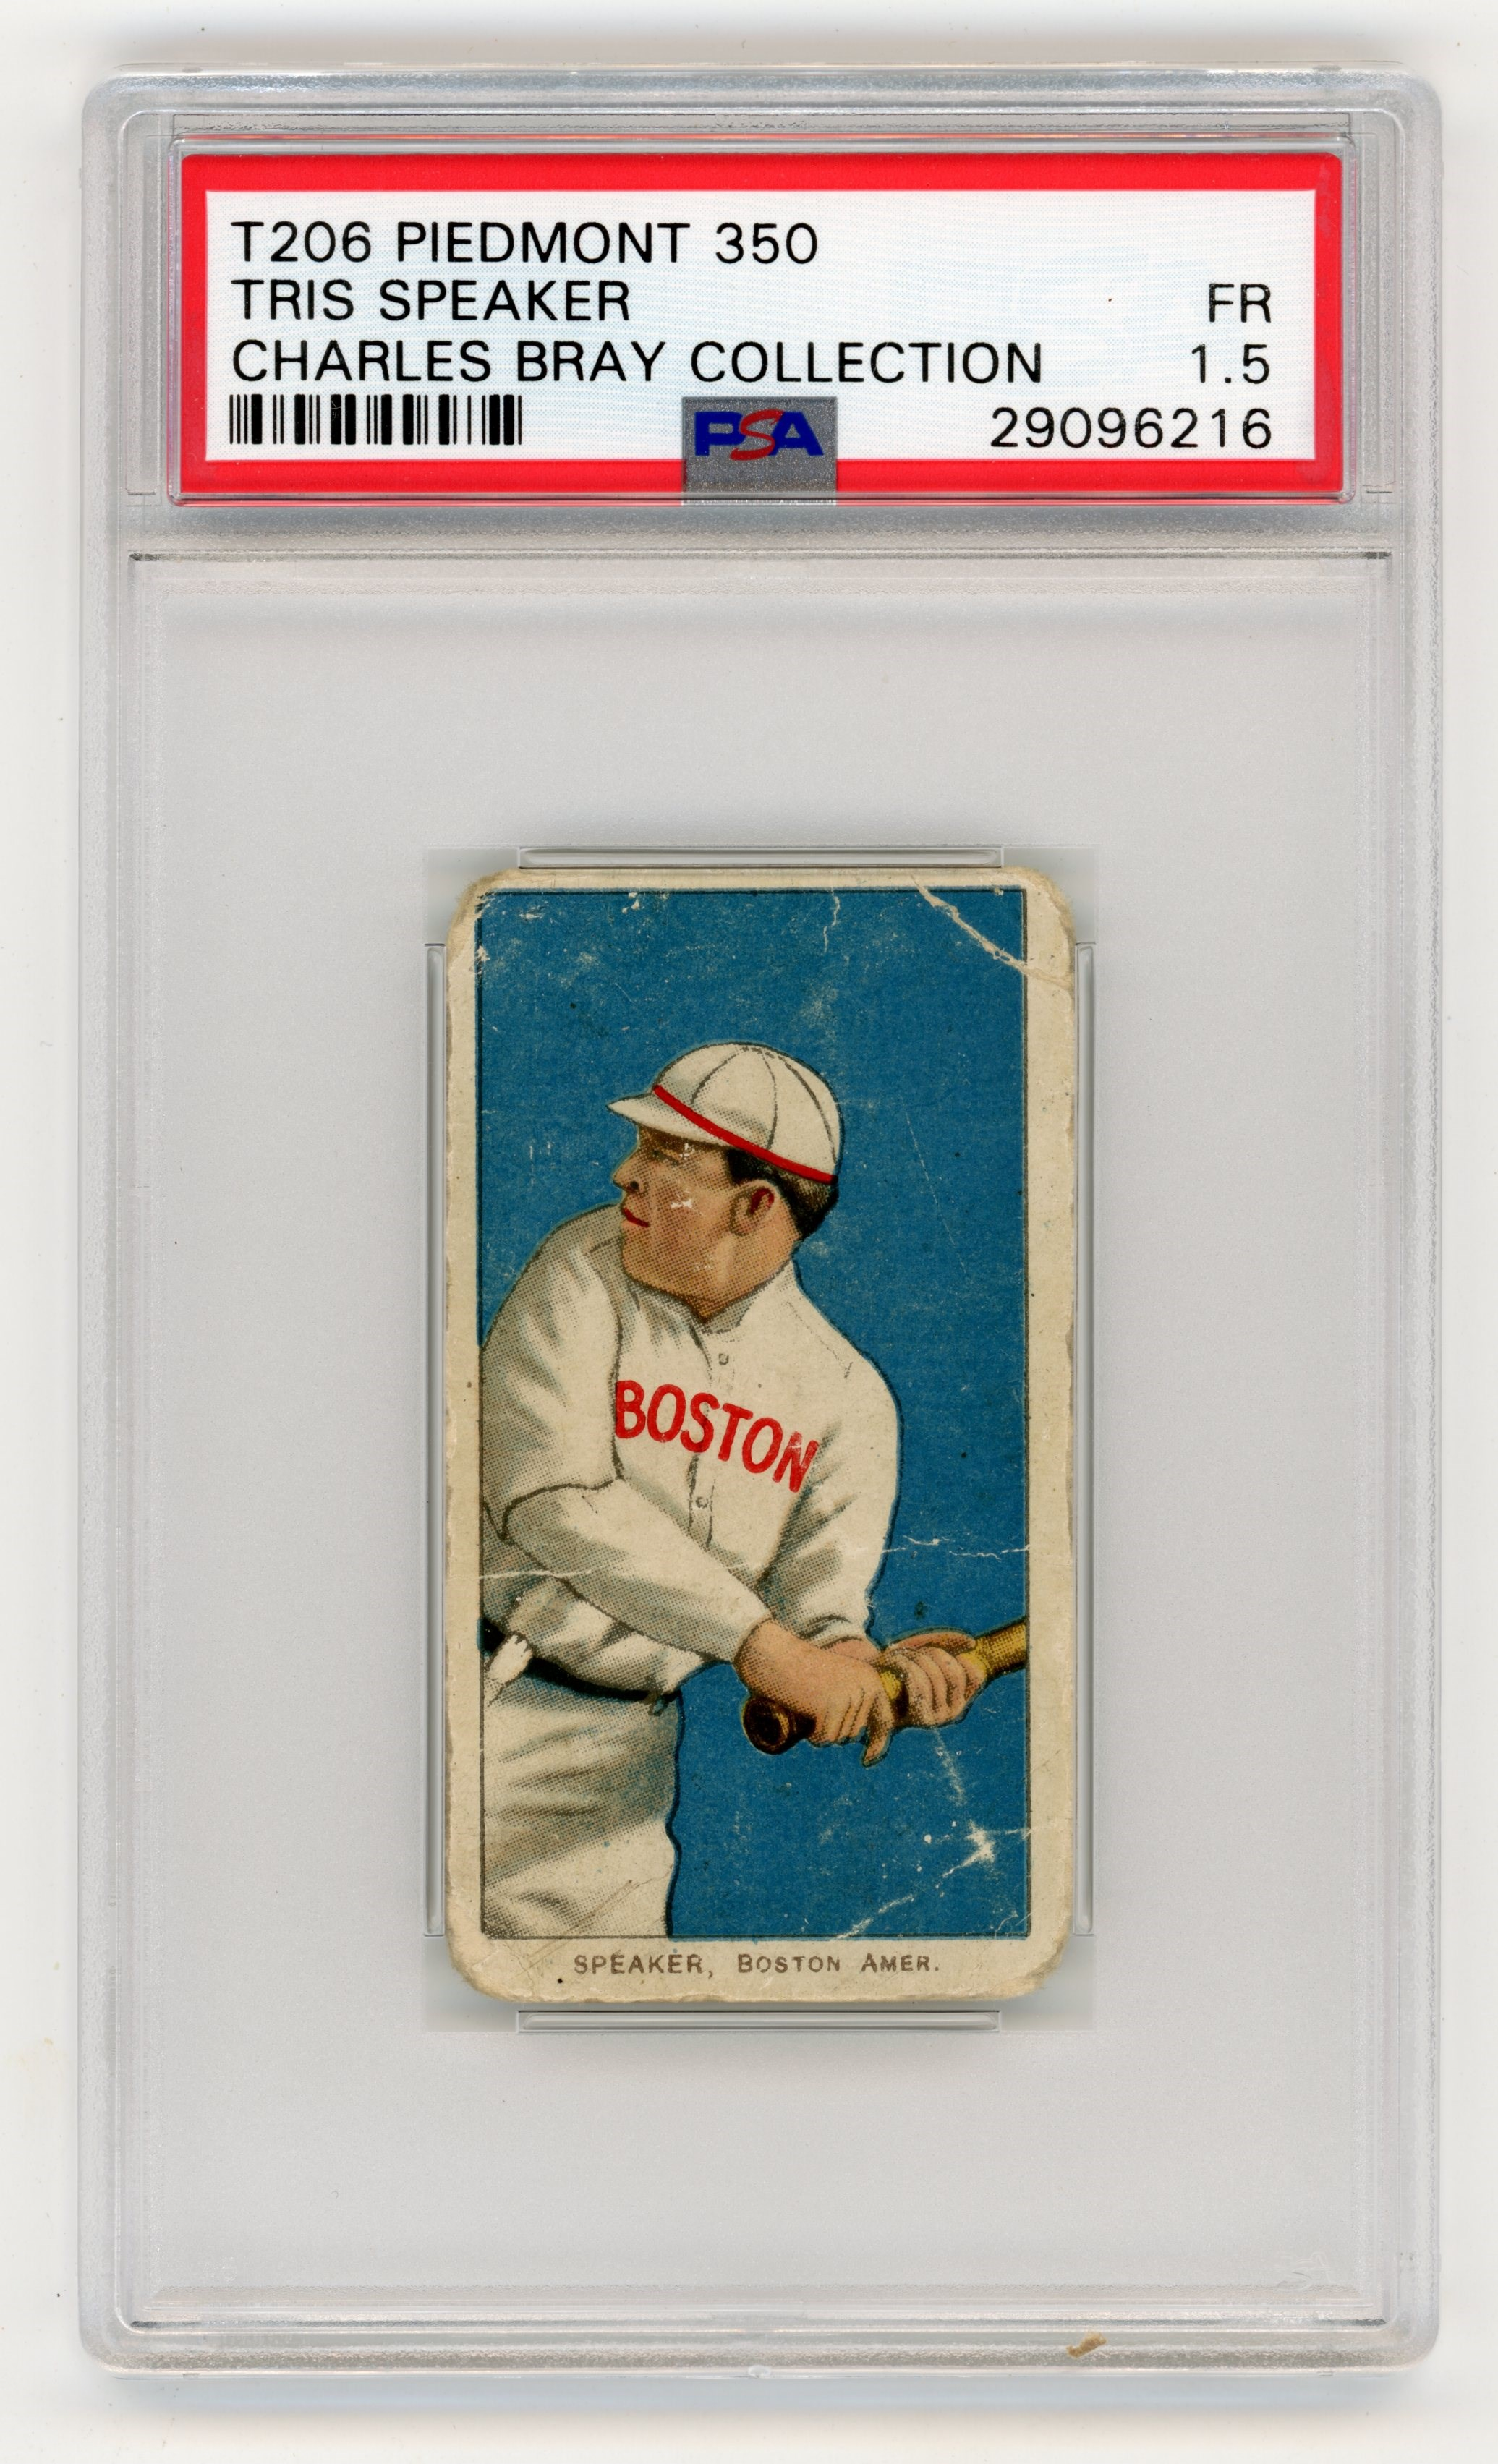 T206 Piedmont 350 Tris Speaker PSA 1.5 From The Charles Bray Collection